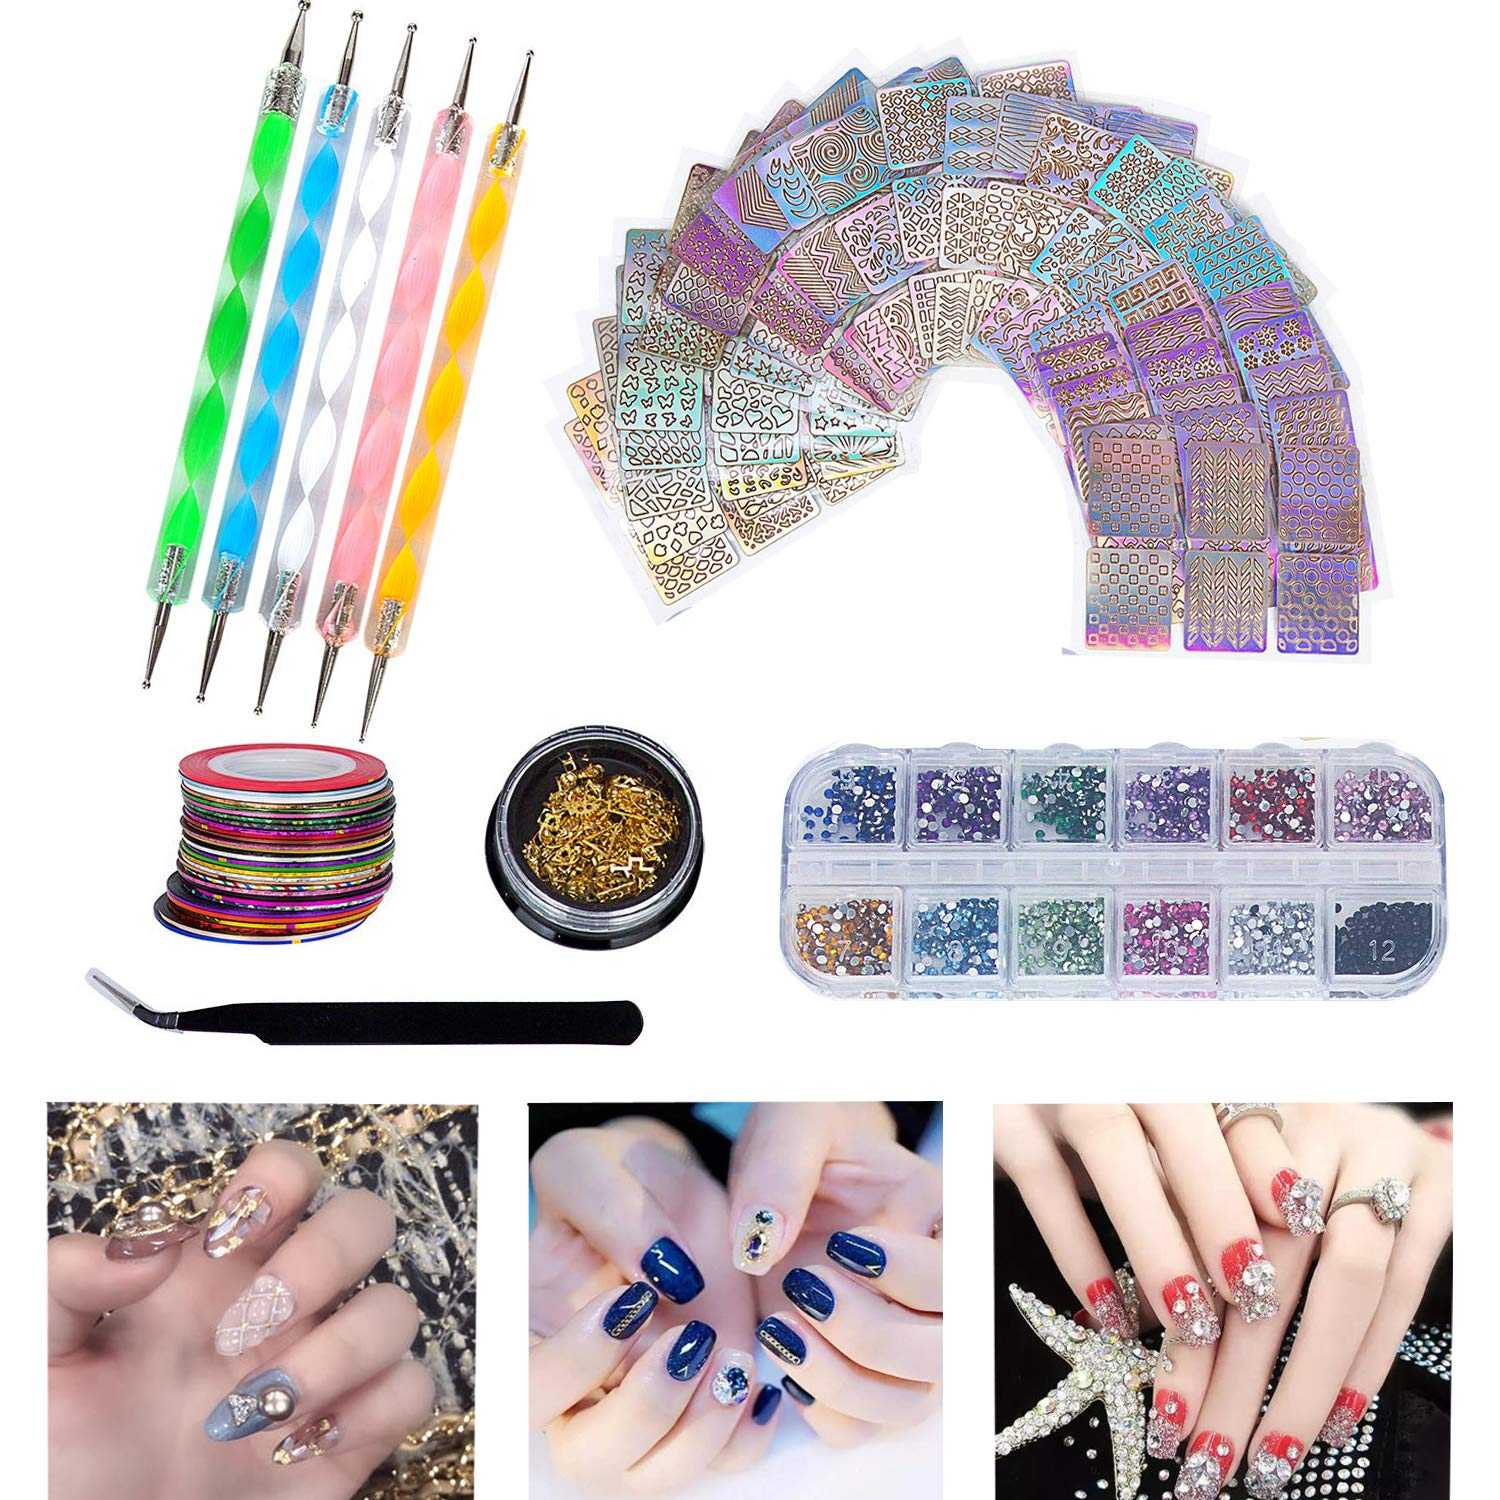 Hakkin 62 Pcs DIY Nail Art Tools Decoration Kit, Set Include: 12 Colors Nail Rhinestones, 30 Pcs Tape Line, 24 Pcs Vinyls Nail Stencil Sticker Sheets Set & 5 Pcs Rhinestones Decorations Dotting Tool by Hakkin